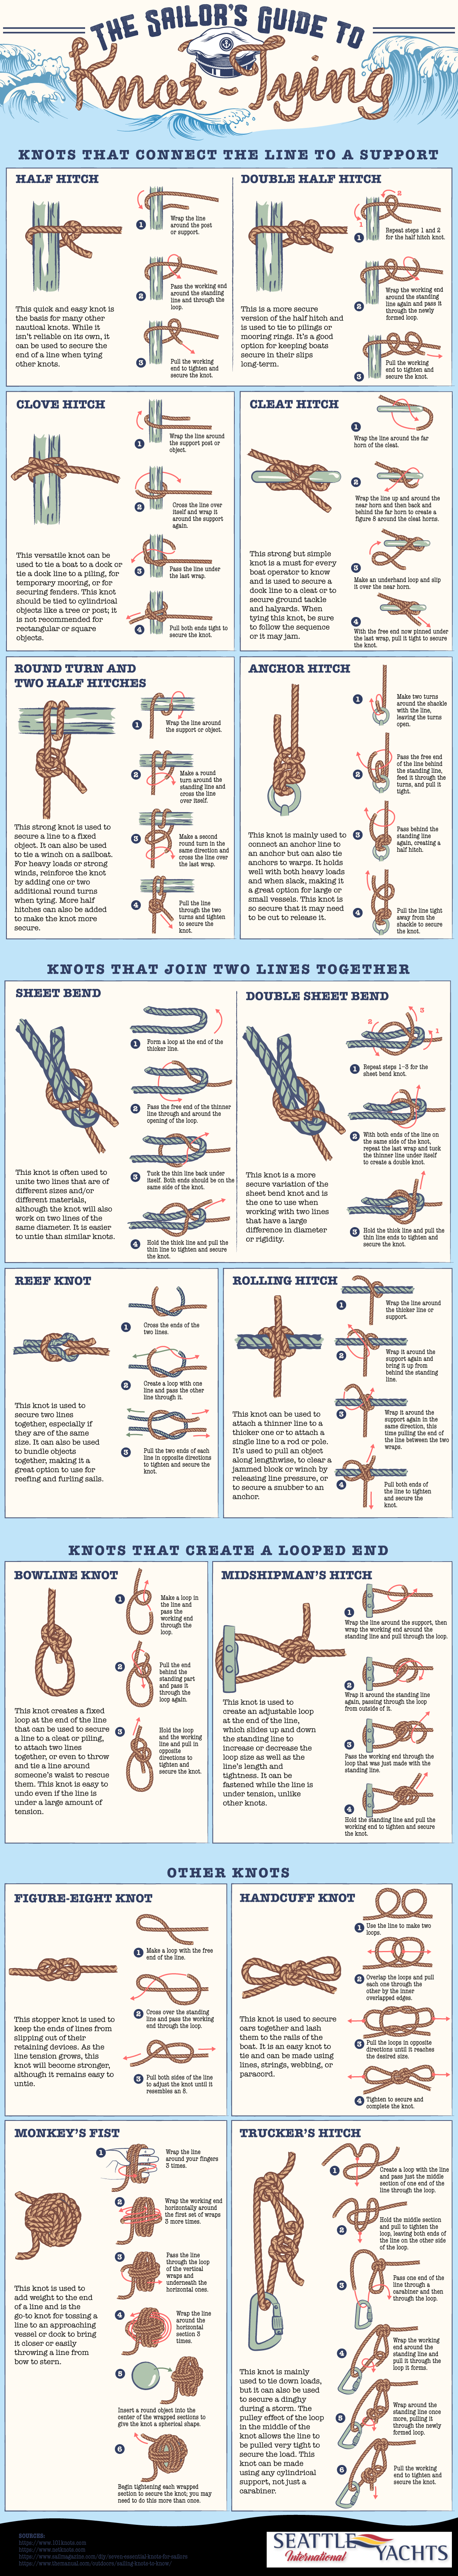 The Sailors Guide to Tying Boat Knots